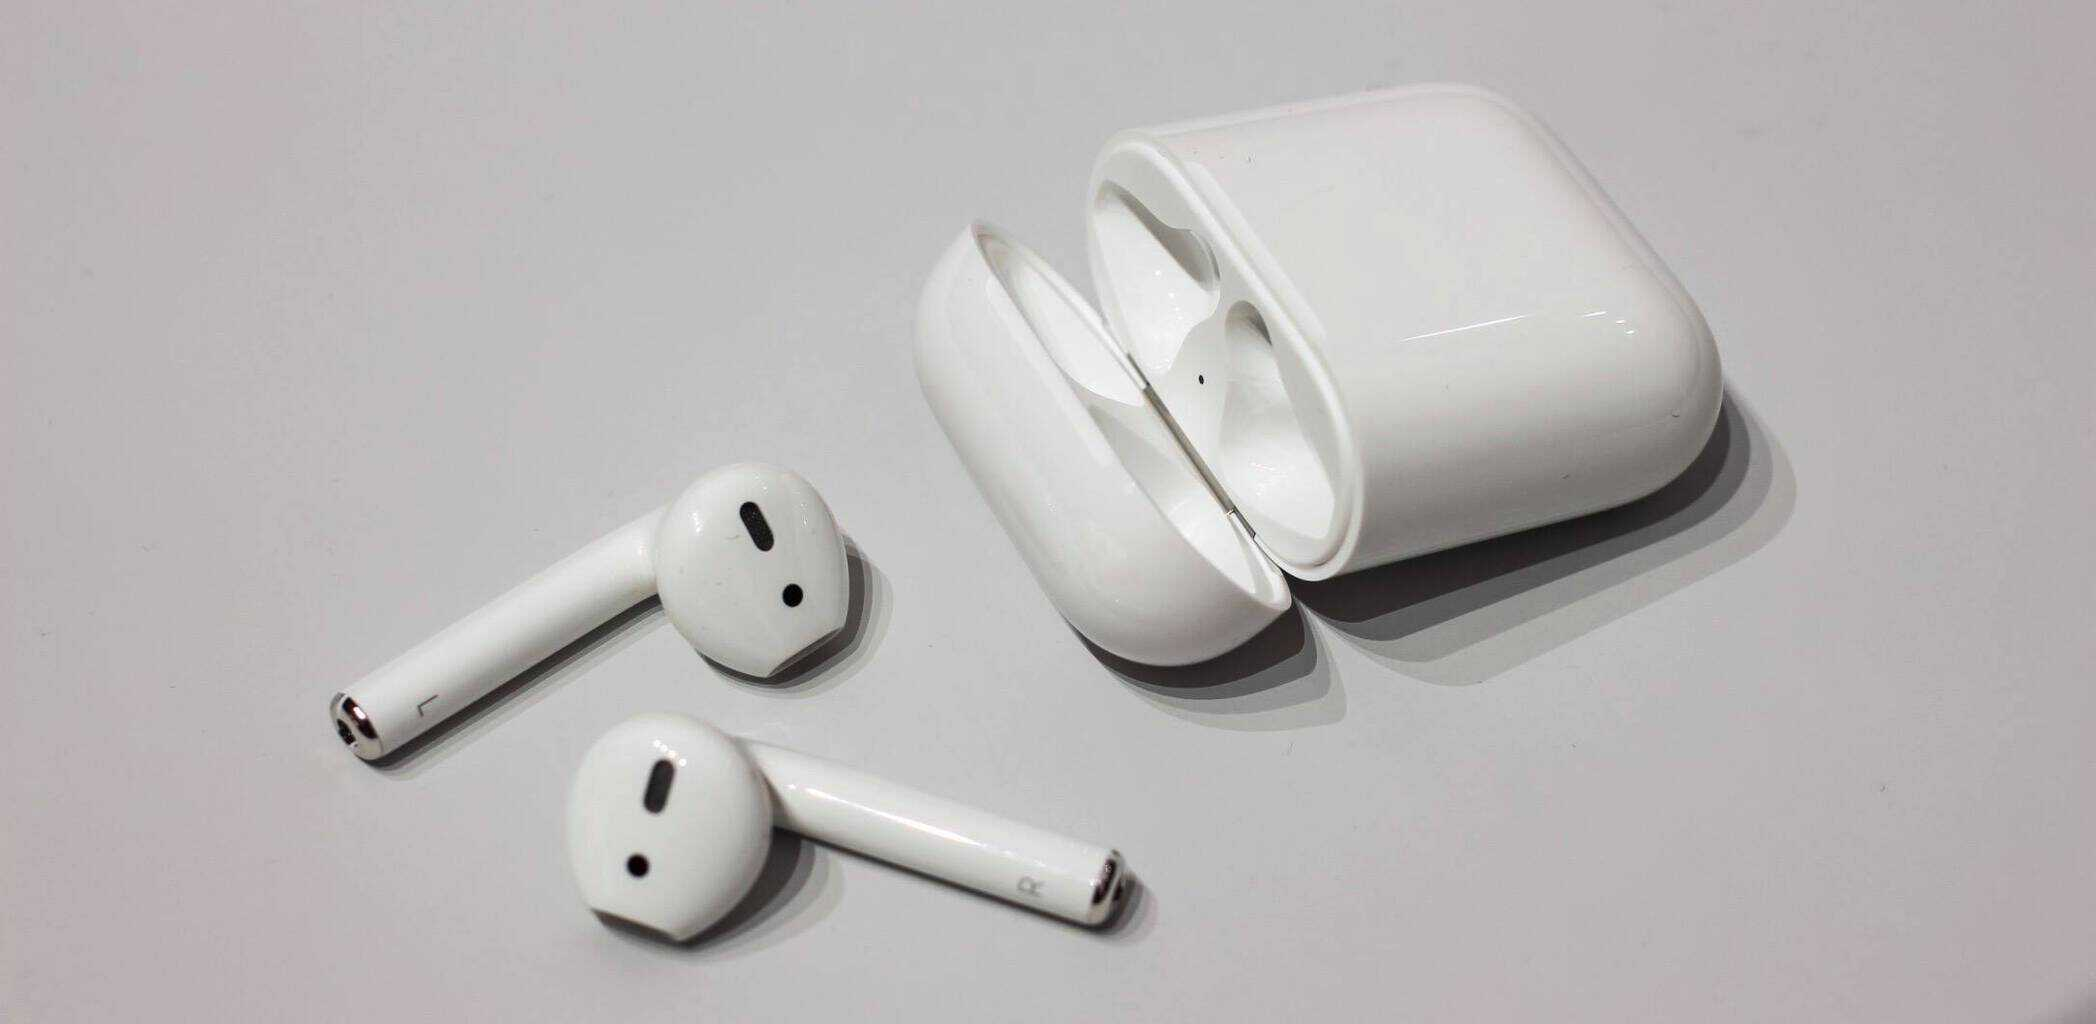 Apple AirPods – Are They Really That Good?